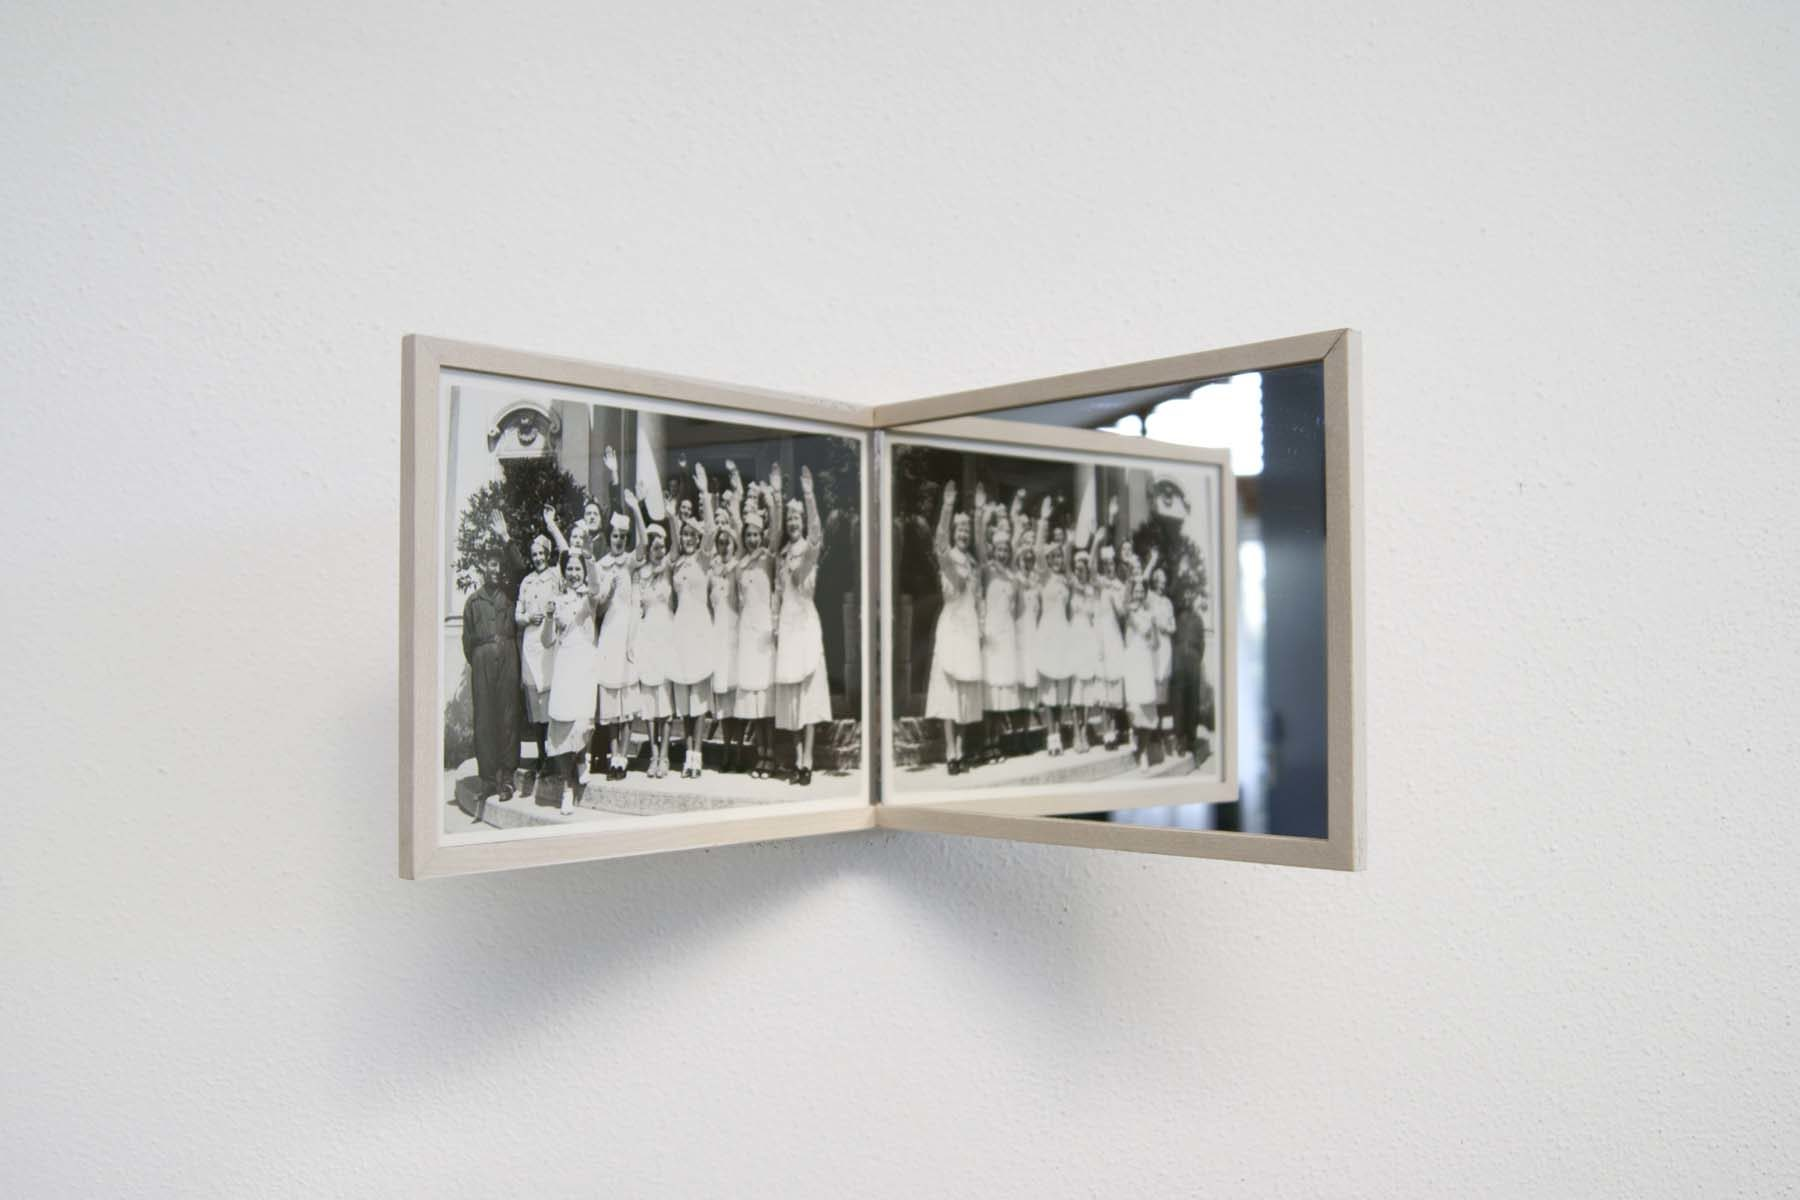 G. Morbin, On-Off, 2014, vintage photo, mirror, 17 x 26.2 x 14.8 cm